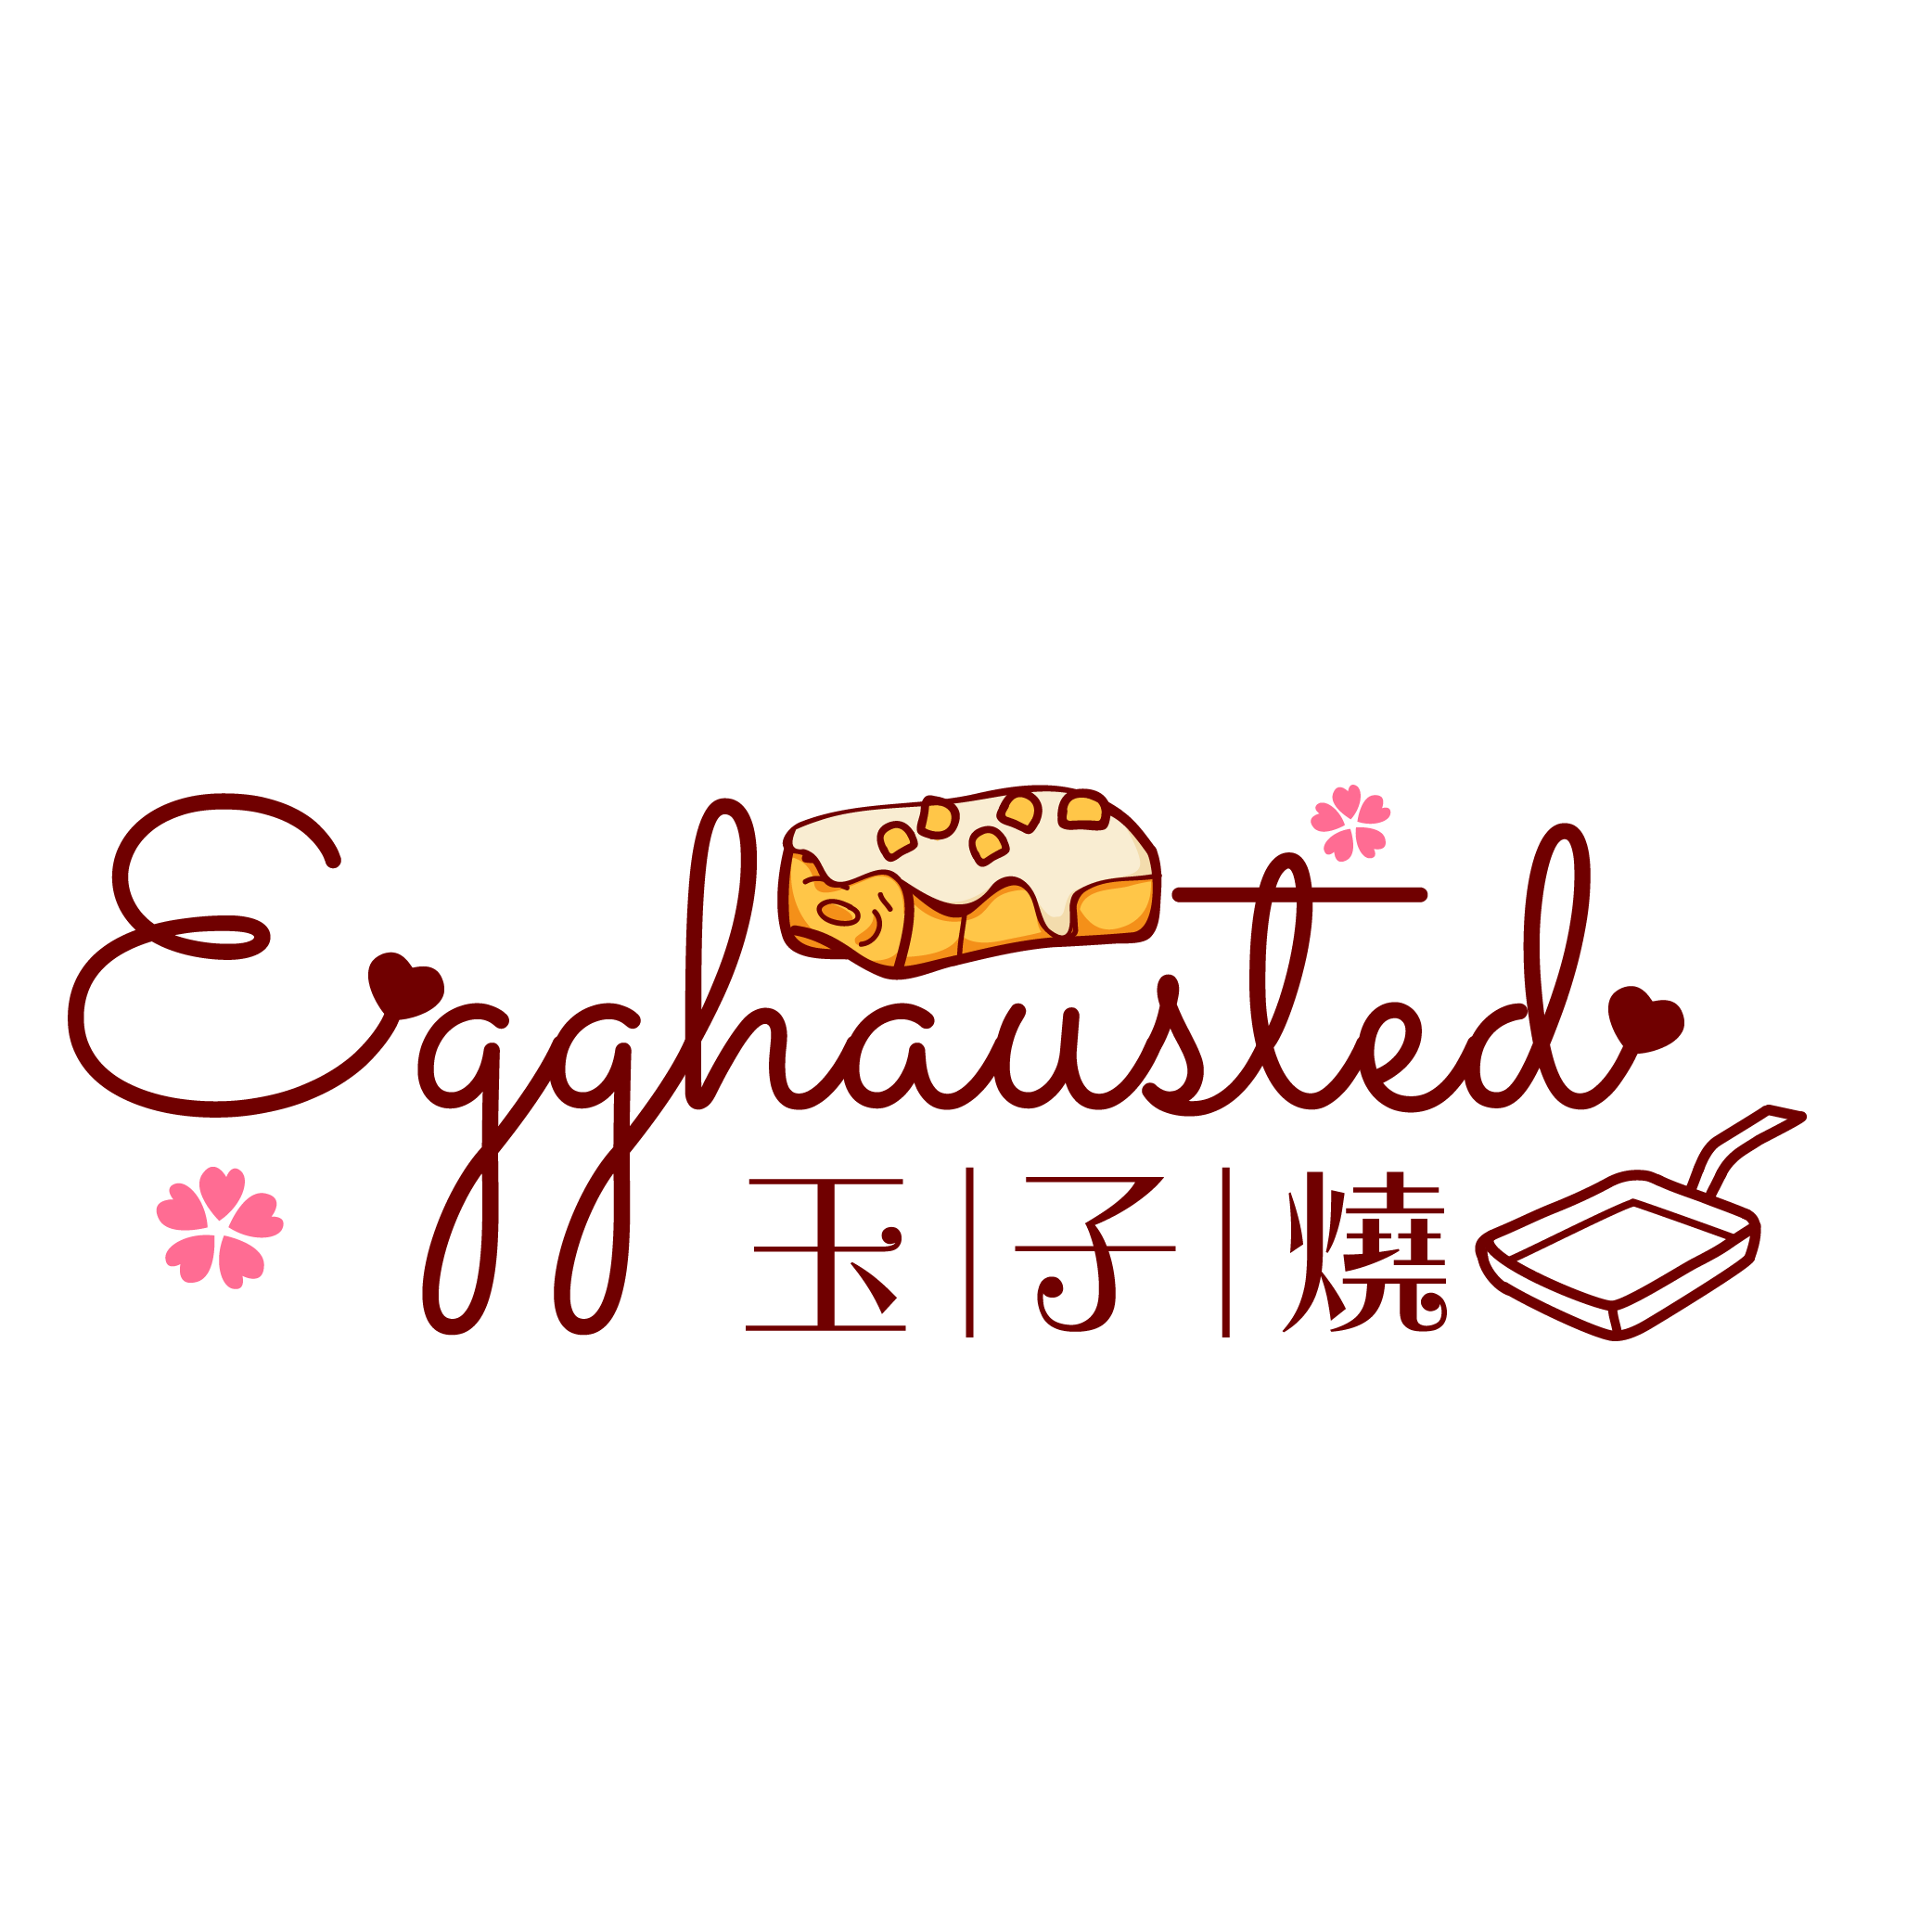 玉子燒 egghausted-透明背景水印-01.png